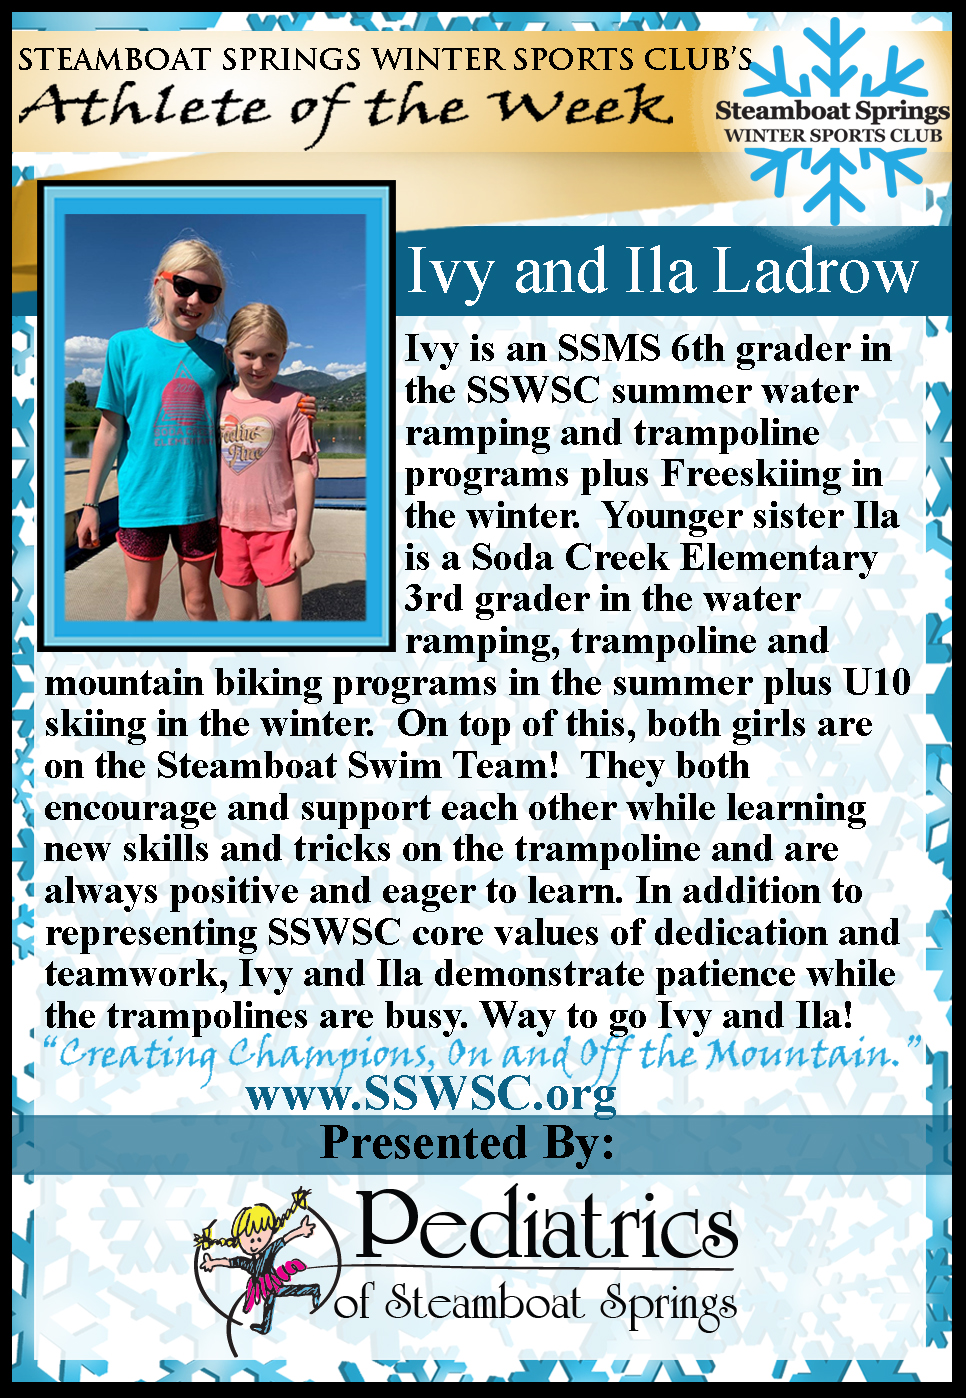 Athlete(s) of the Week: Ivy and Ila Ladrow